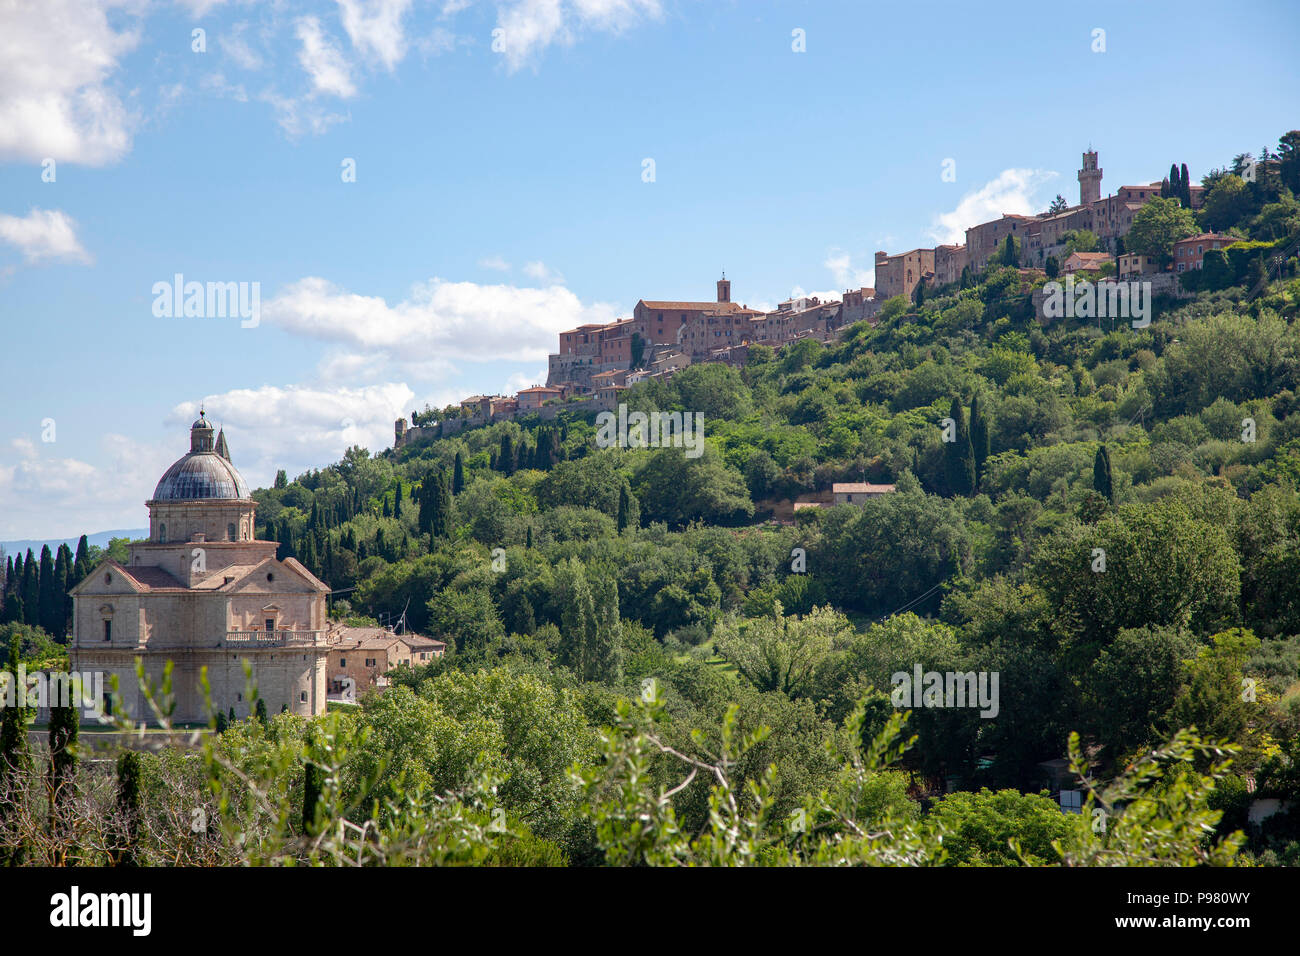 Below the town, the San Biagio church has been built according a focused Greek cross-shaped plan topped by a dome. Eglise de San Biagio en Toscane. - Stock Image